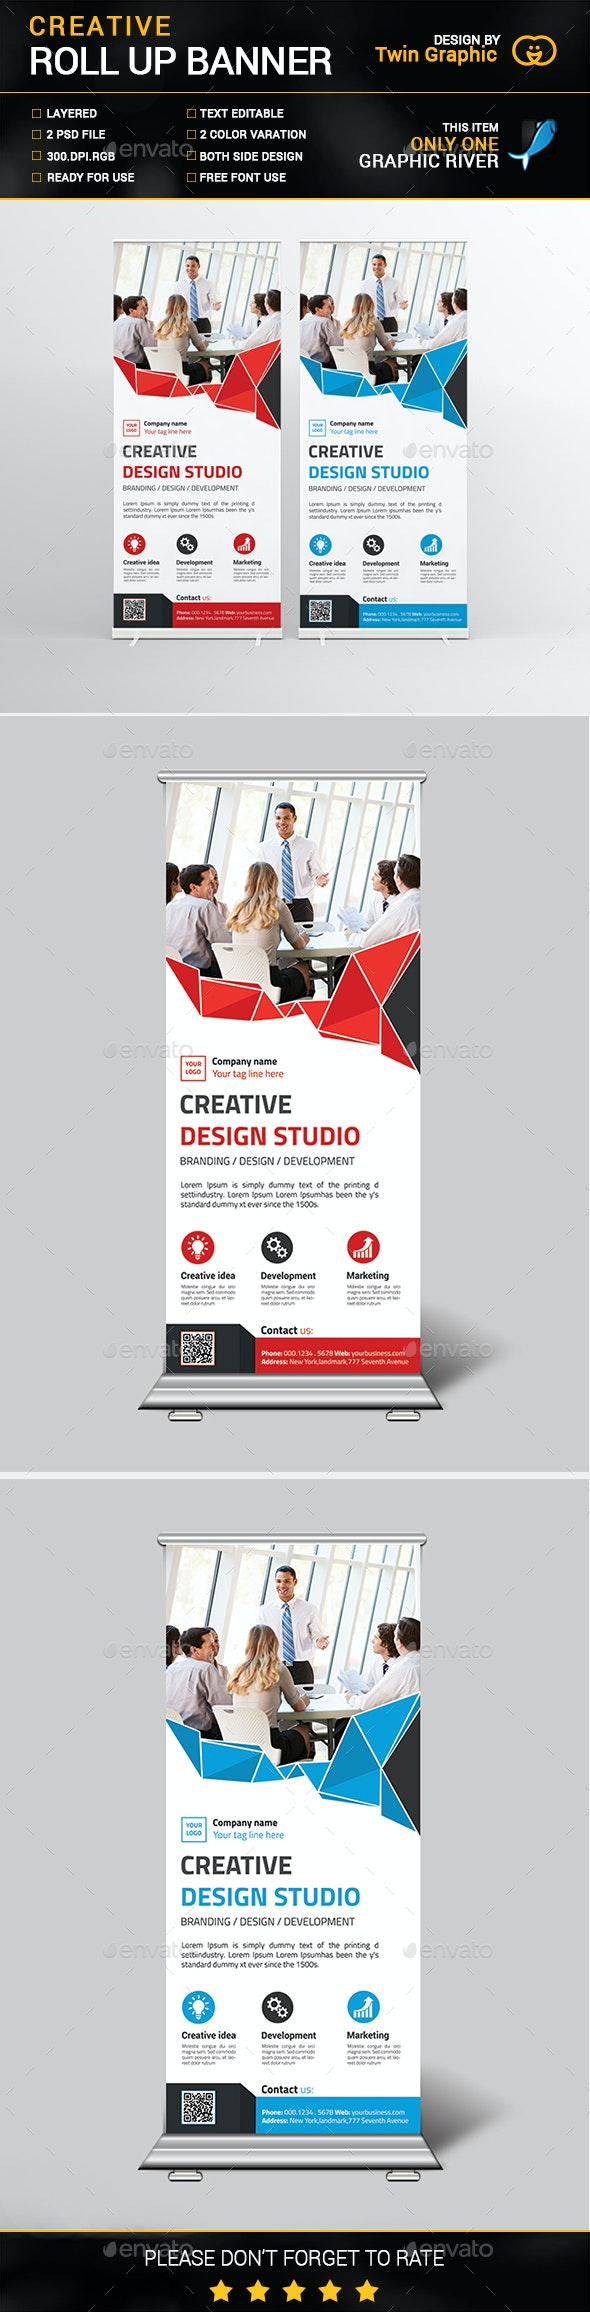 Creative Roll up Banner Design - Signage Print Templates